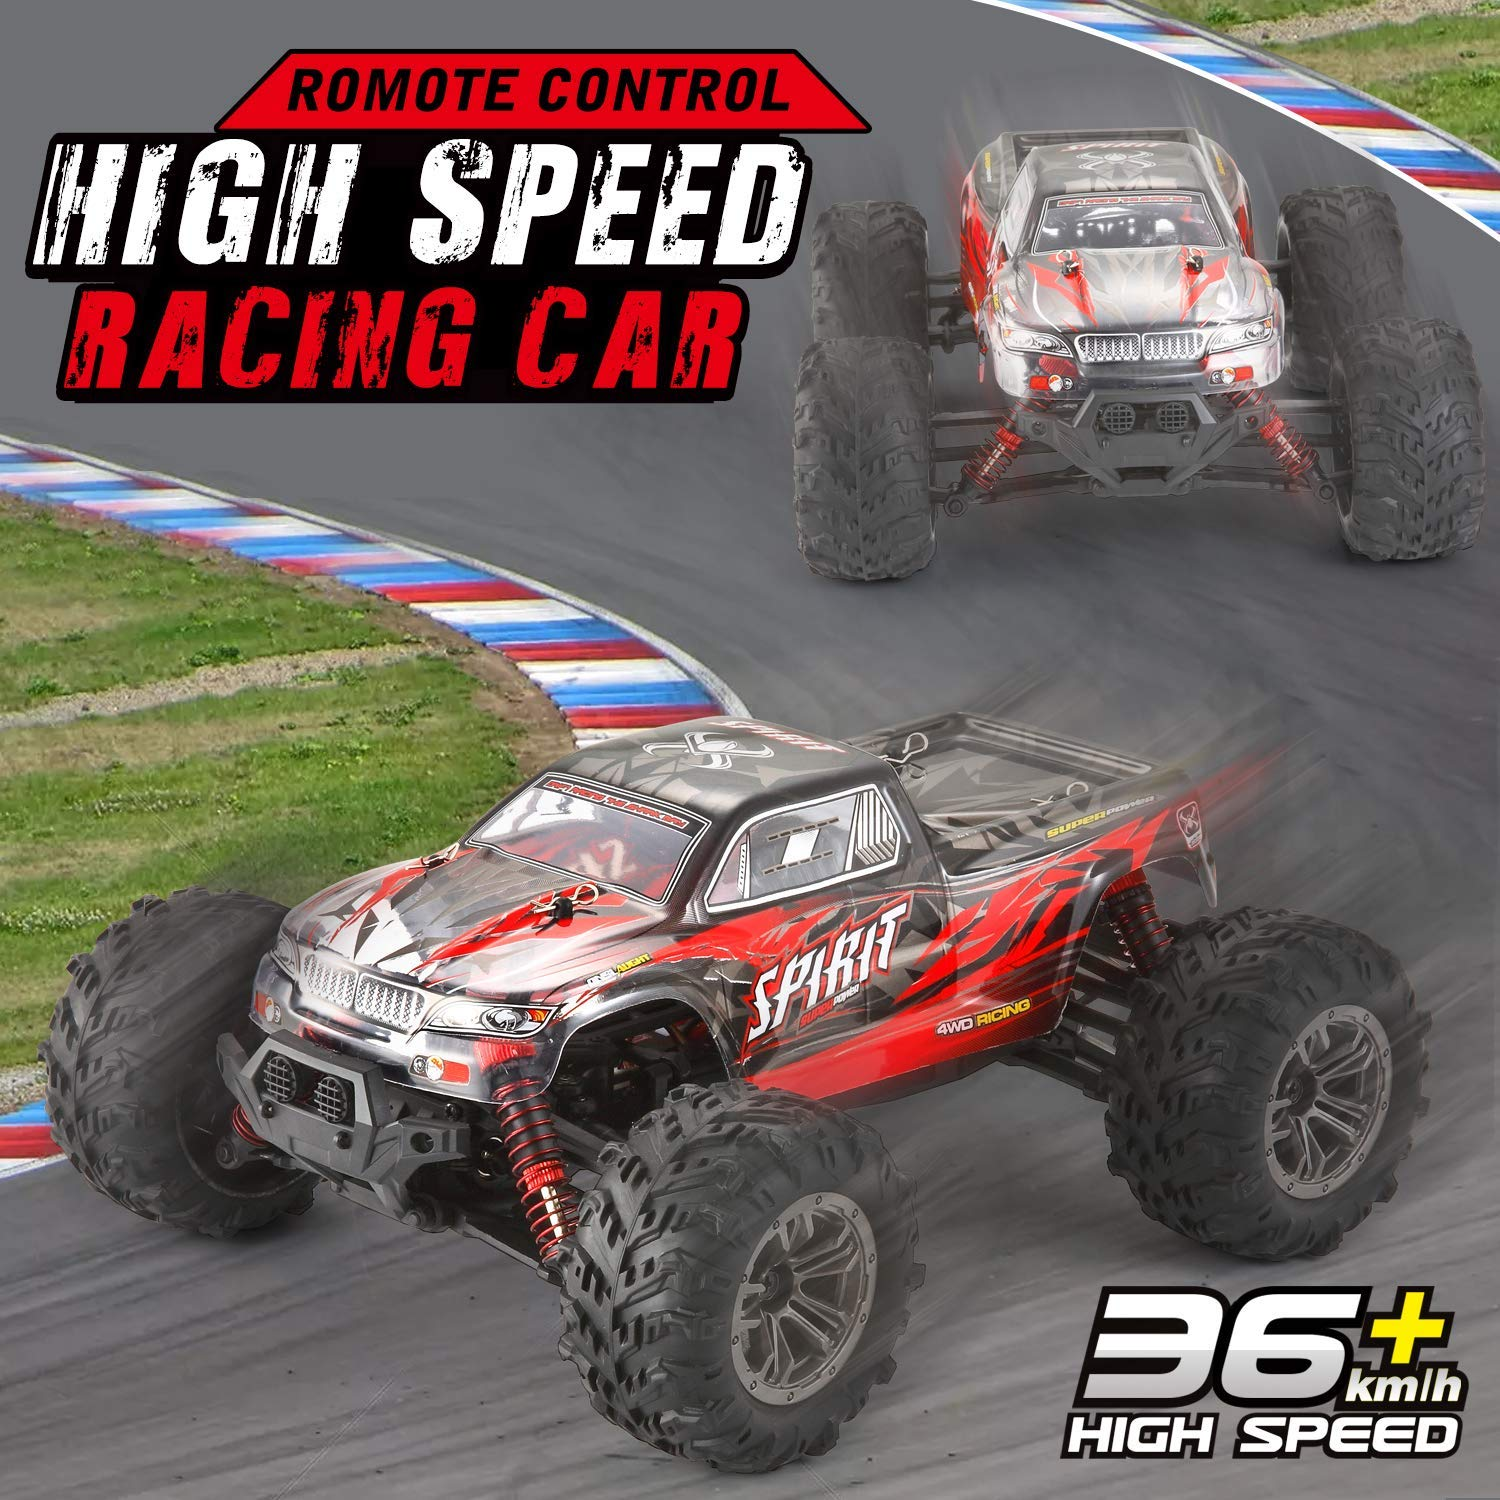 VATOS Remote Control Car High Speed Off-Road Vehicle 1:16 Scale 36km/h 4WD 2.4GHz Electric Racing Car RC Buggy Vehicle Truck Buggy Crawler Toy Car for Adults and Kids by VATOS (Image #2)